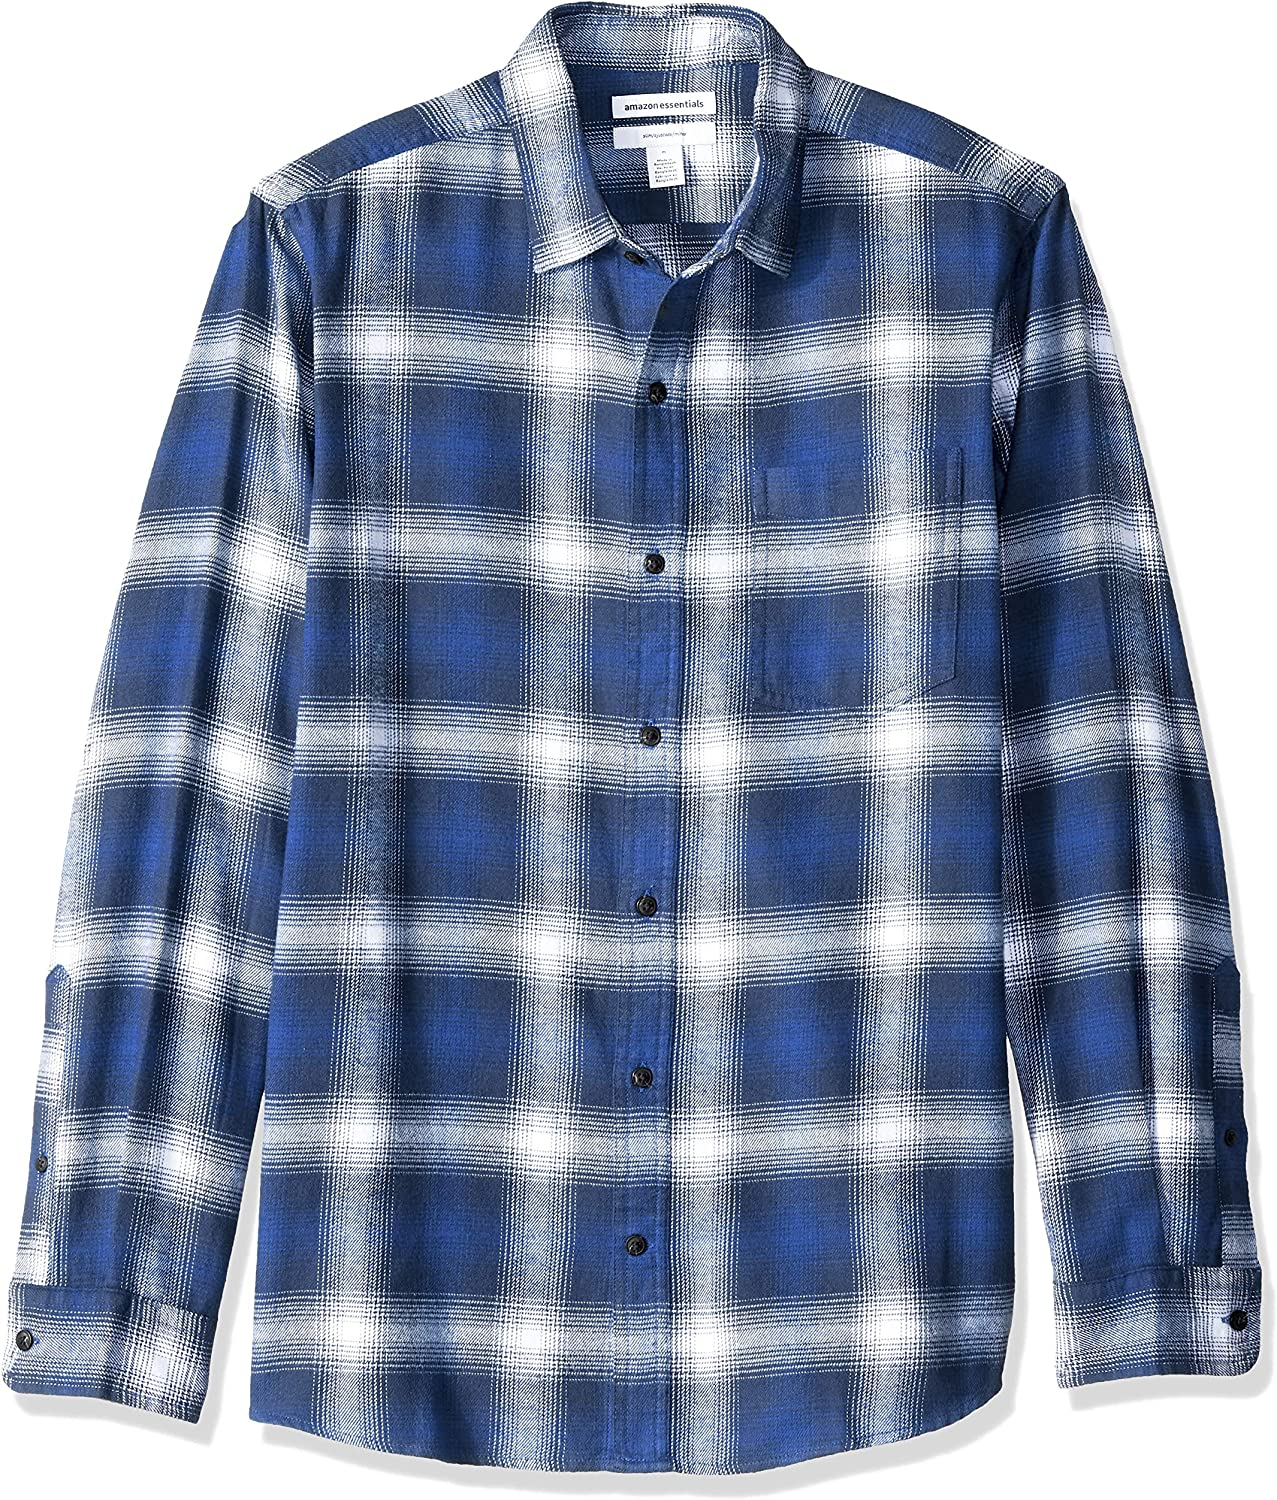 Essentials Men's Slim-Fit Long-Sleeve Flannel Shirt: Clothing